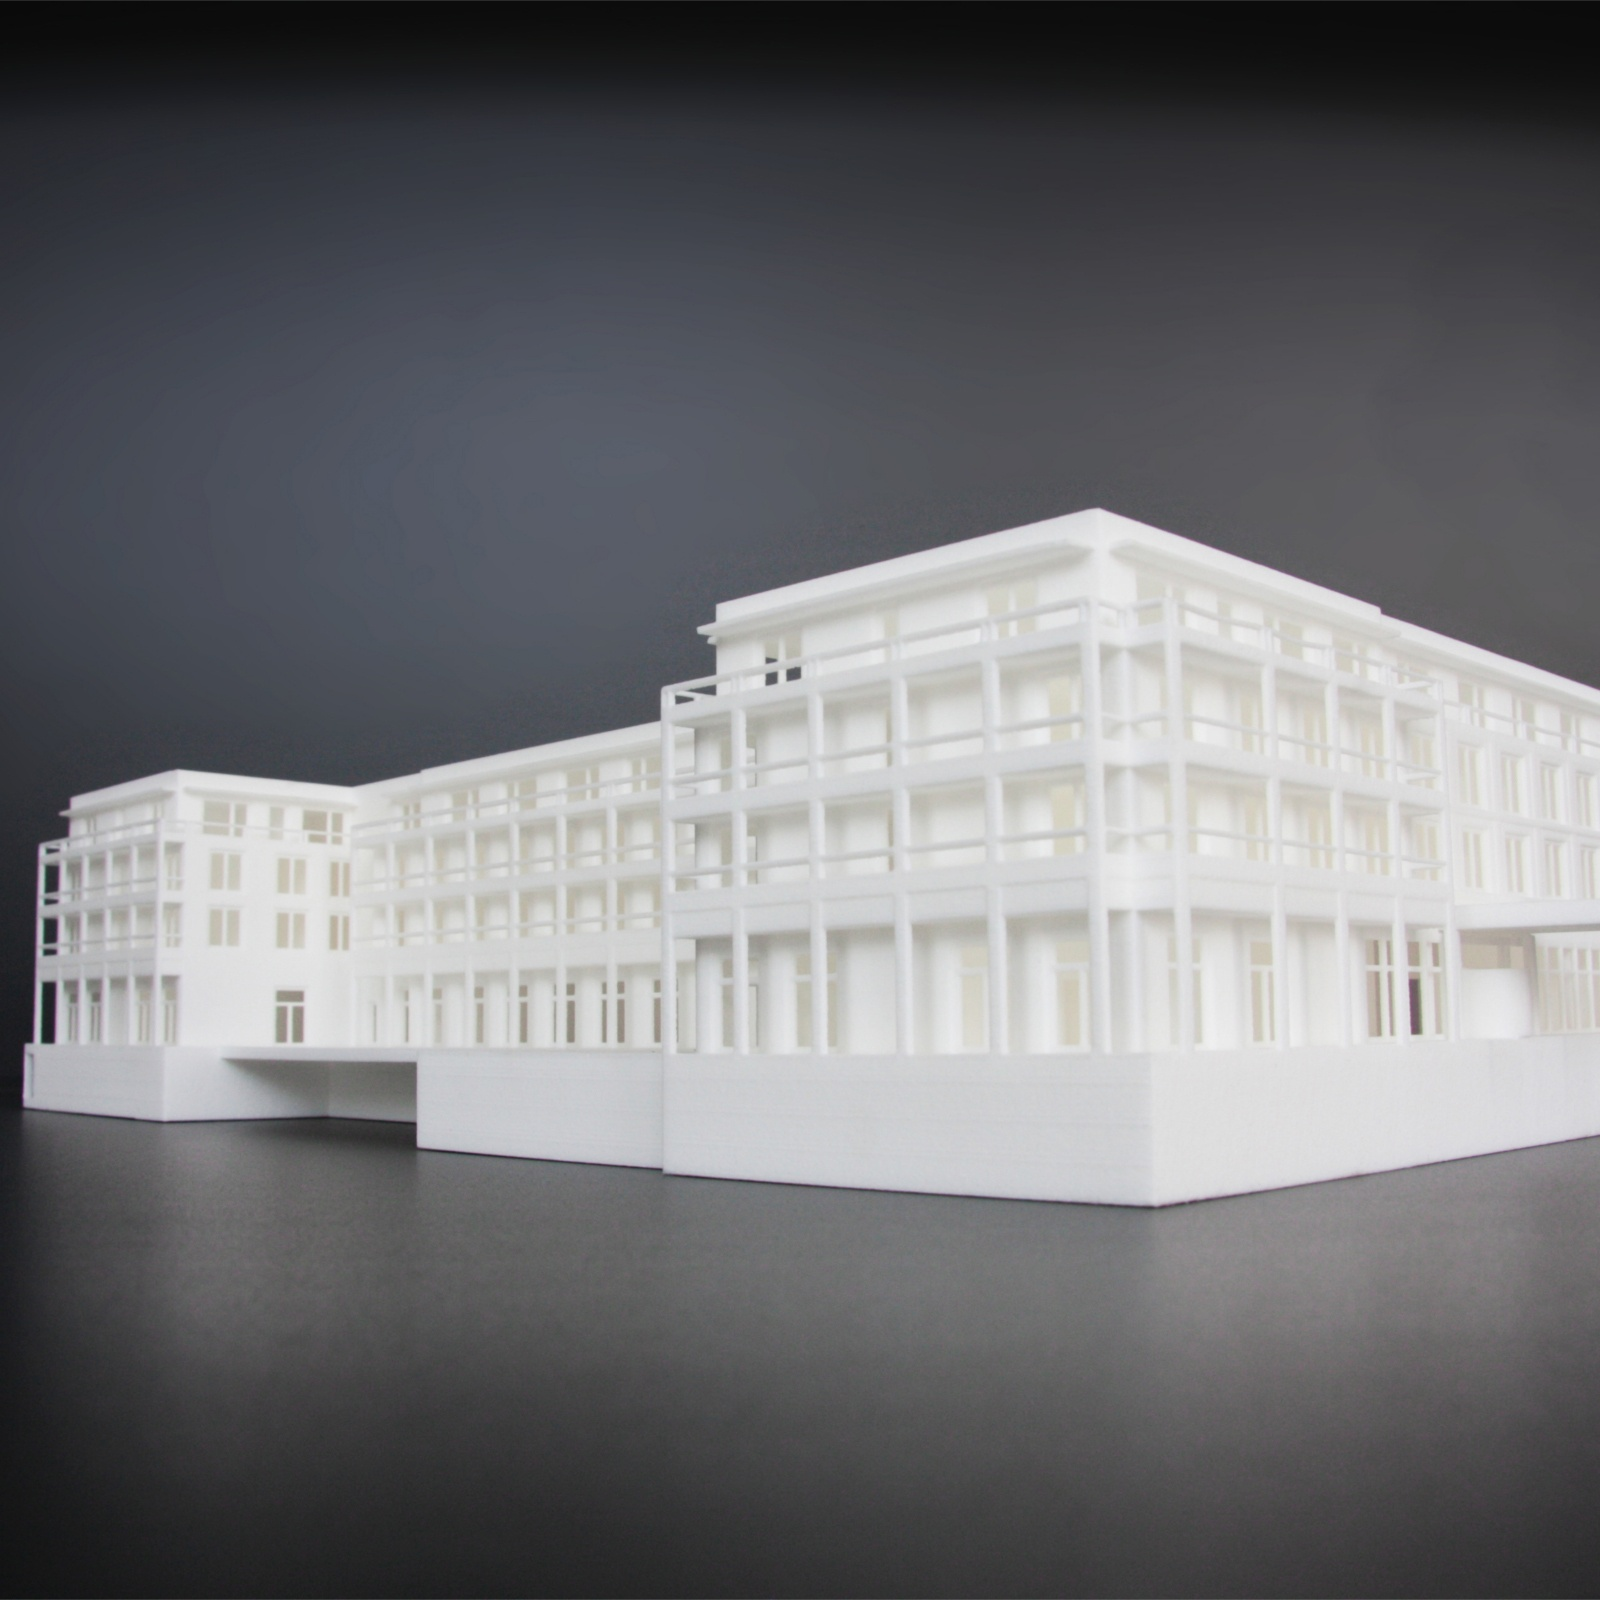 Parkhotel Bad Saarow, 3D Printed Model